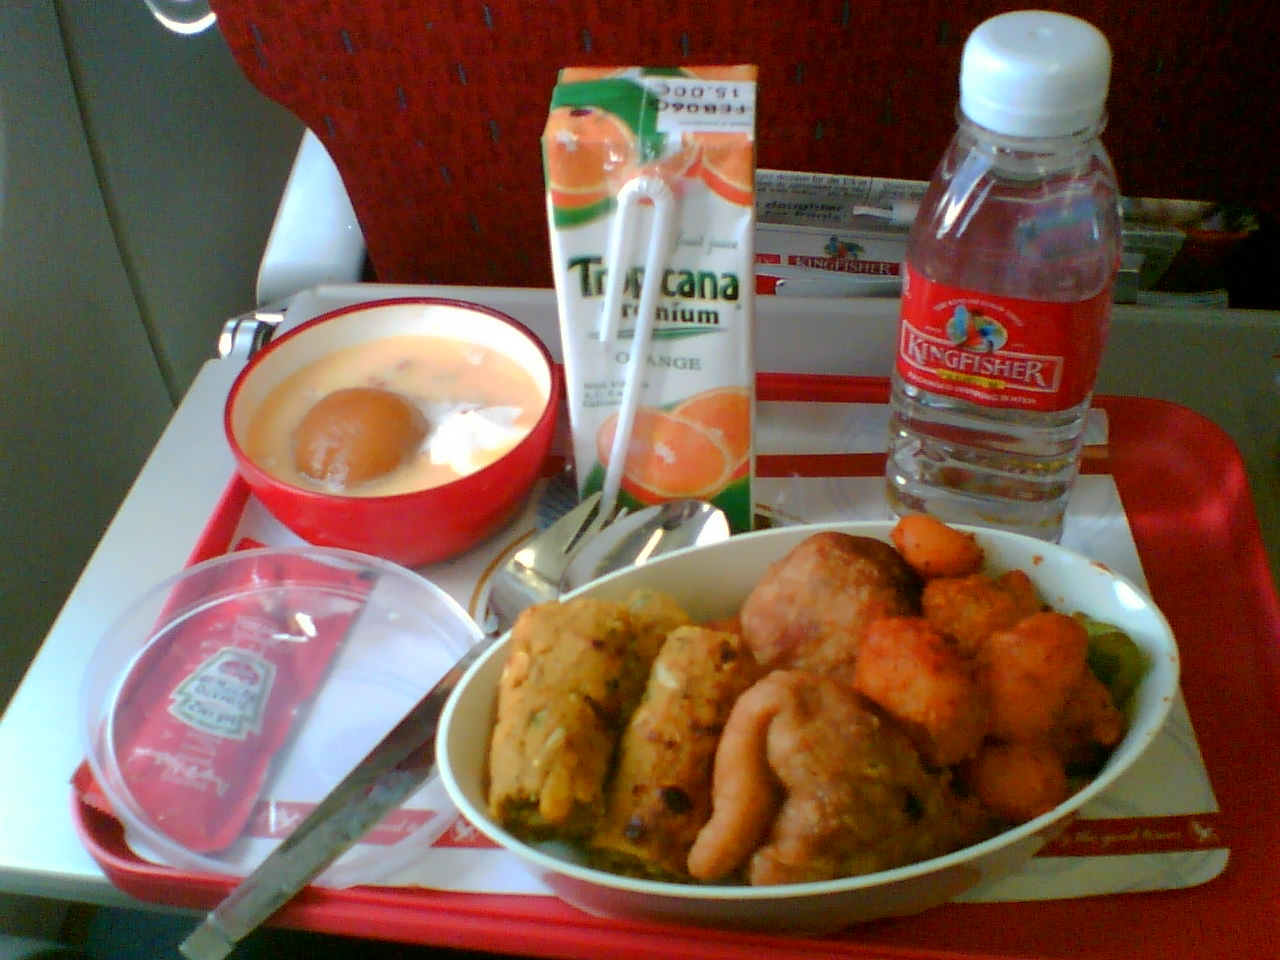 File:Economy class meal on board a Kingfisher Airlines domestic flight